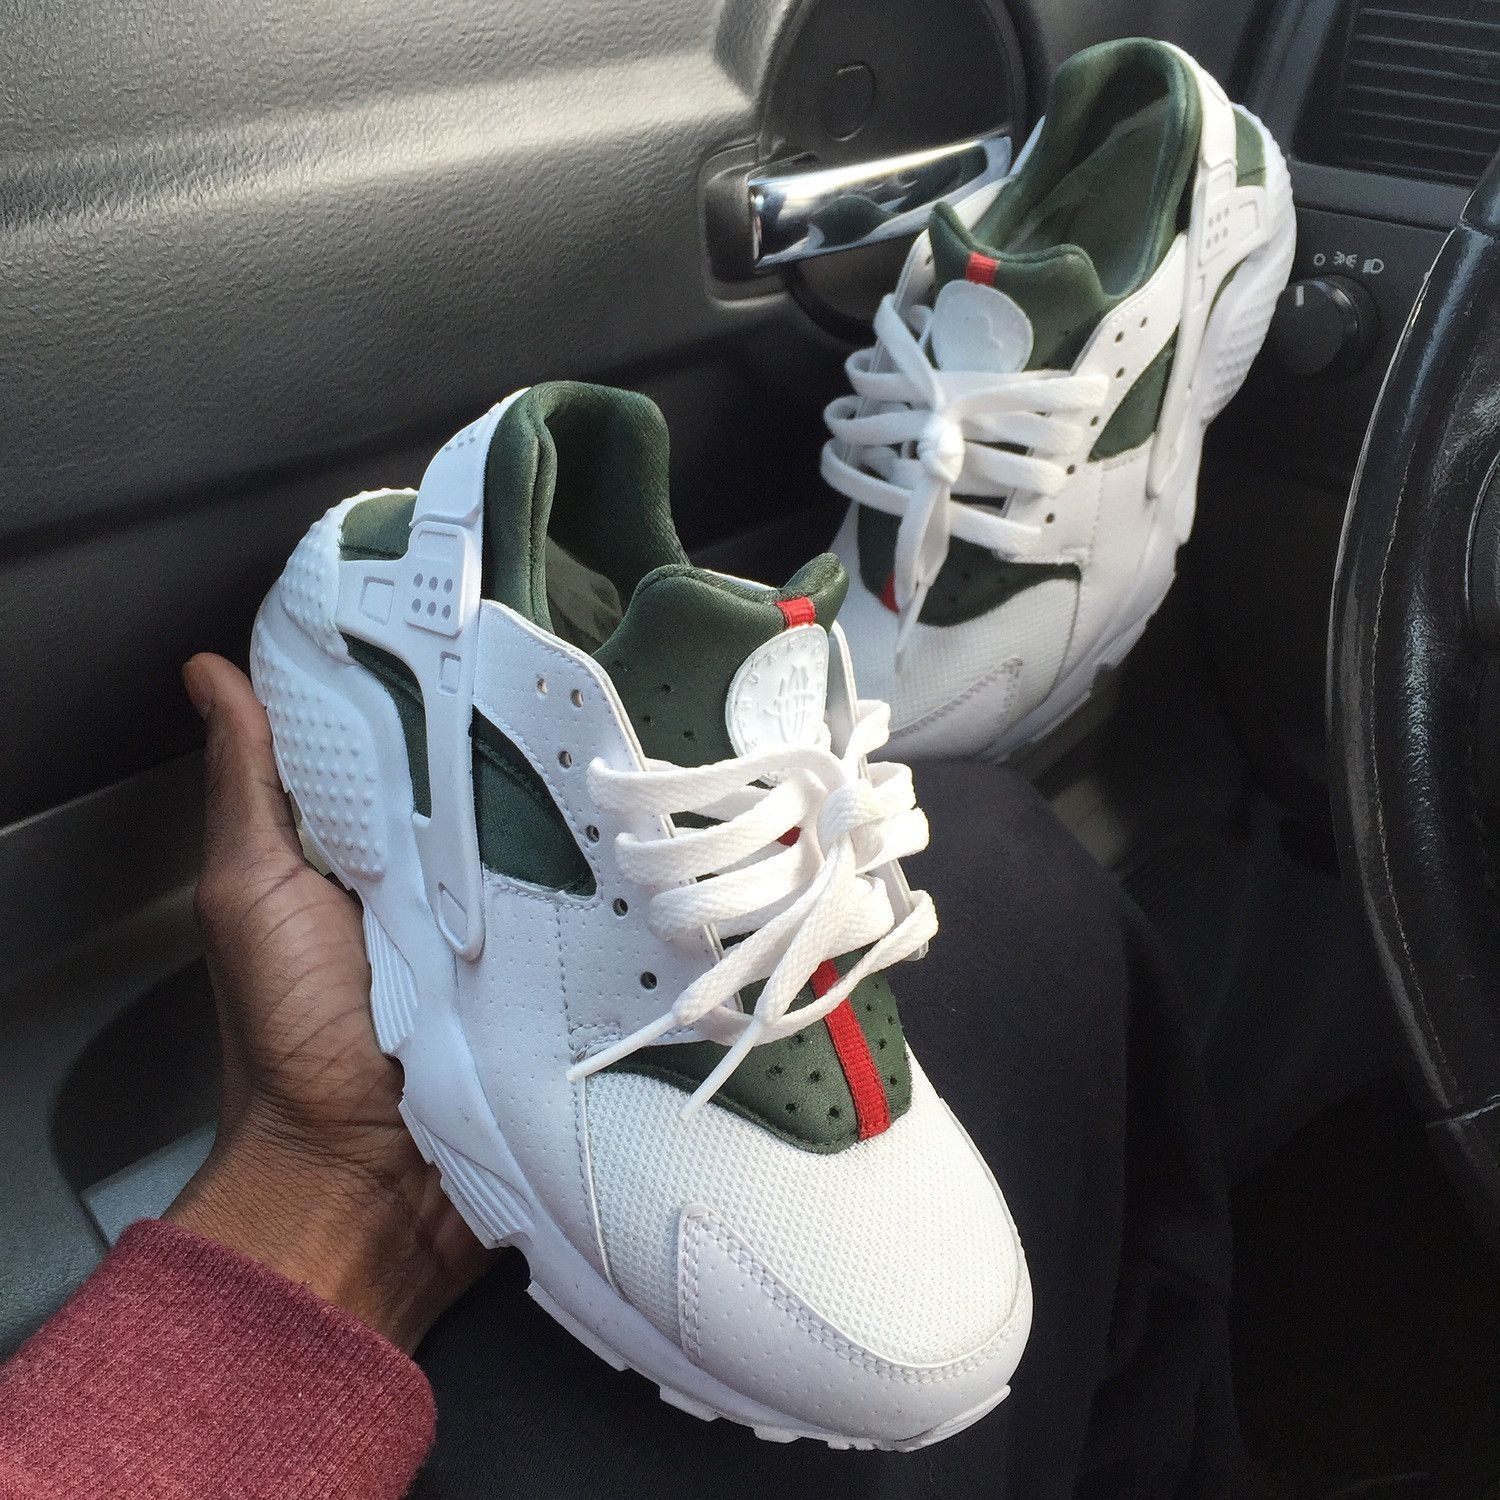 CUSTOM Gucci Inspired Air Huaraches